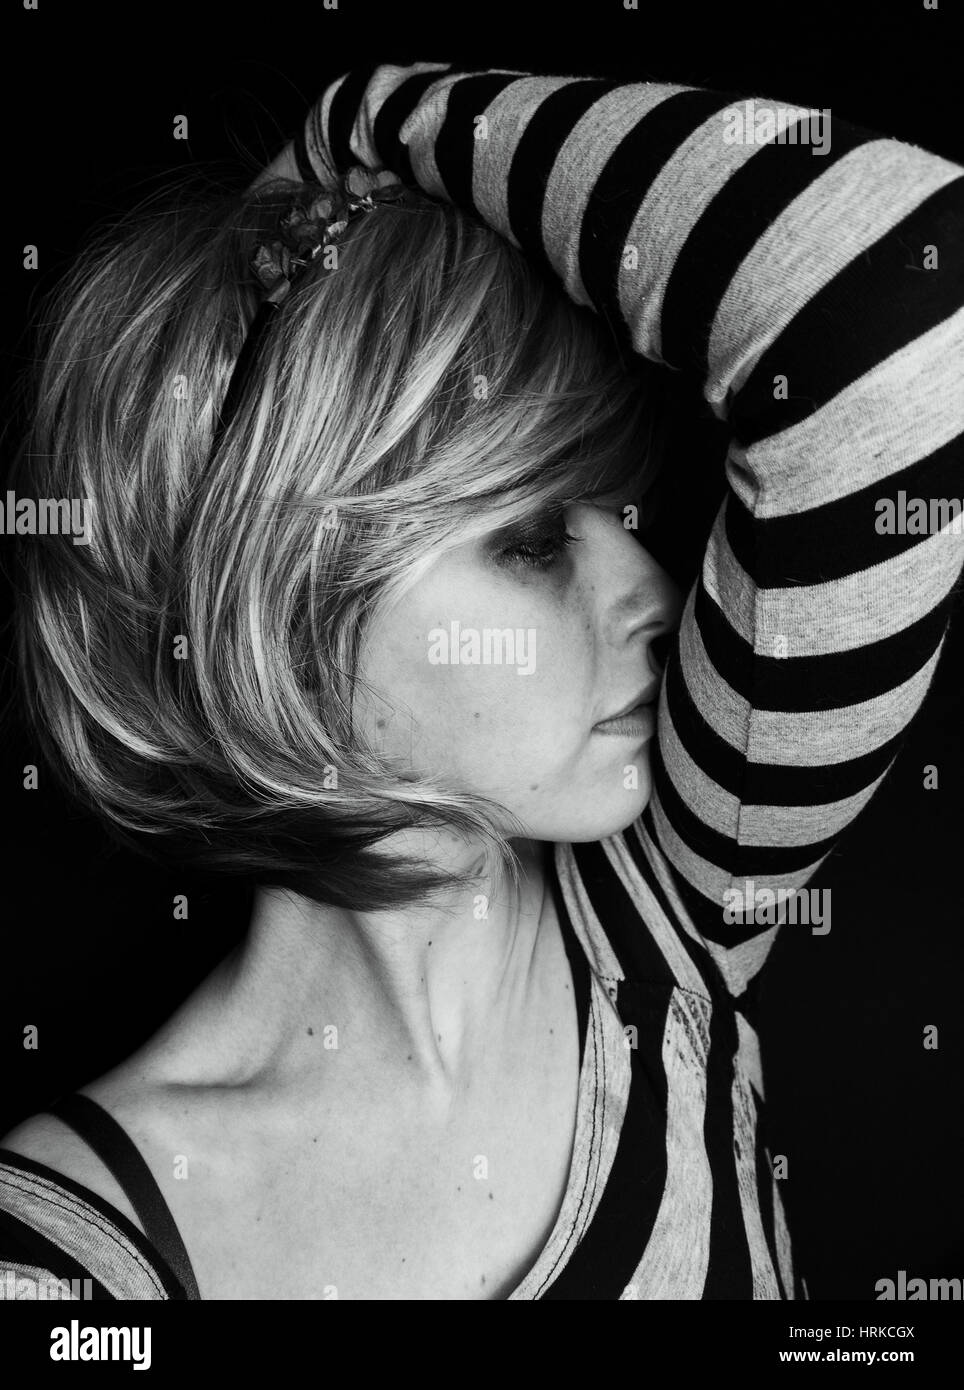 Dark portraits of a emo blond woman - Stock Image